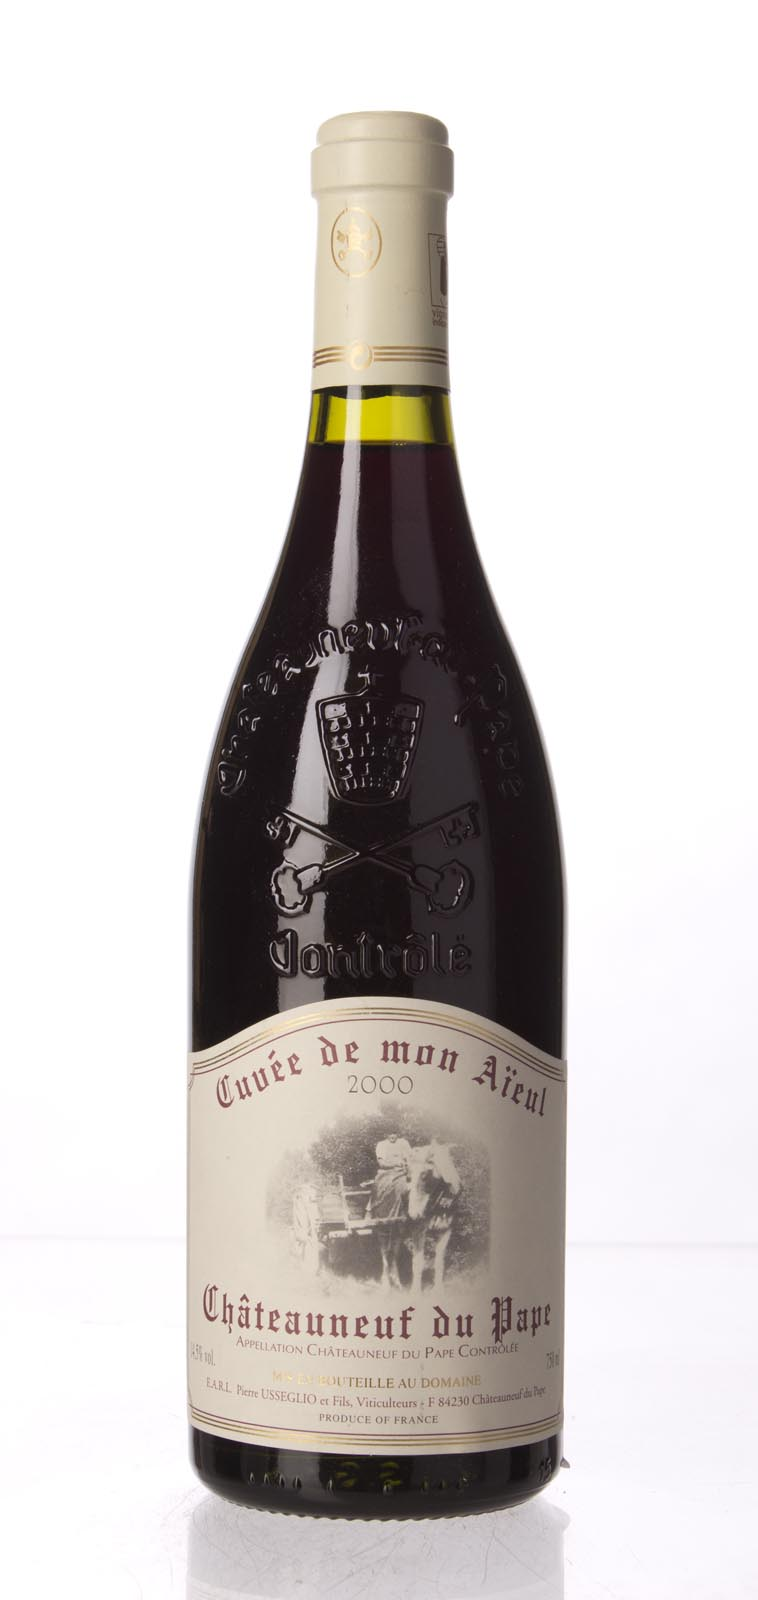 Pierre Usseglio Chateauneuf du Pape Cuvee de Mon Aieul 2000, 750mL (WA95) from The BPW - Merchants of rare and fine wines.